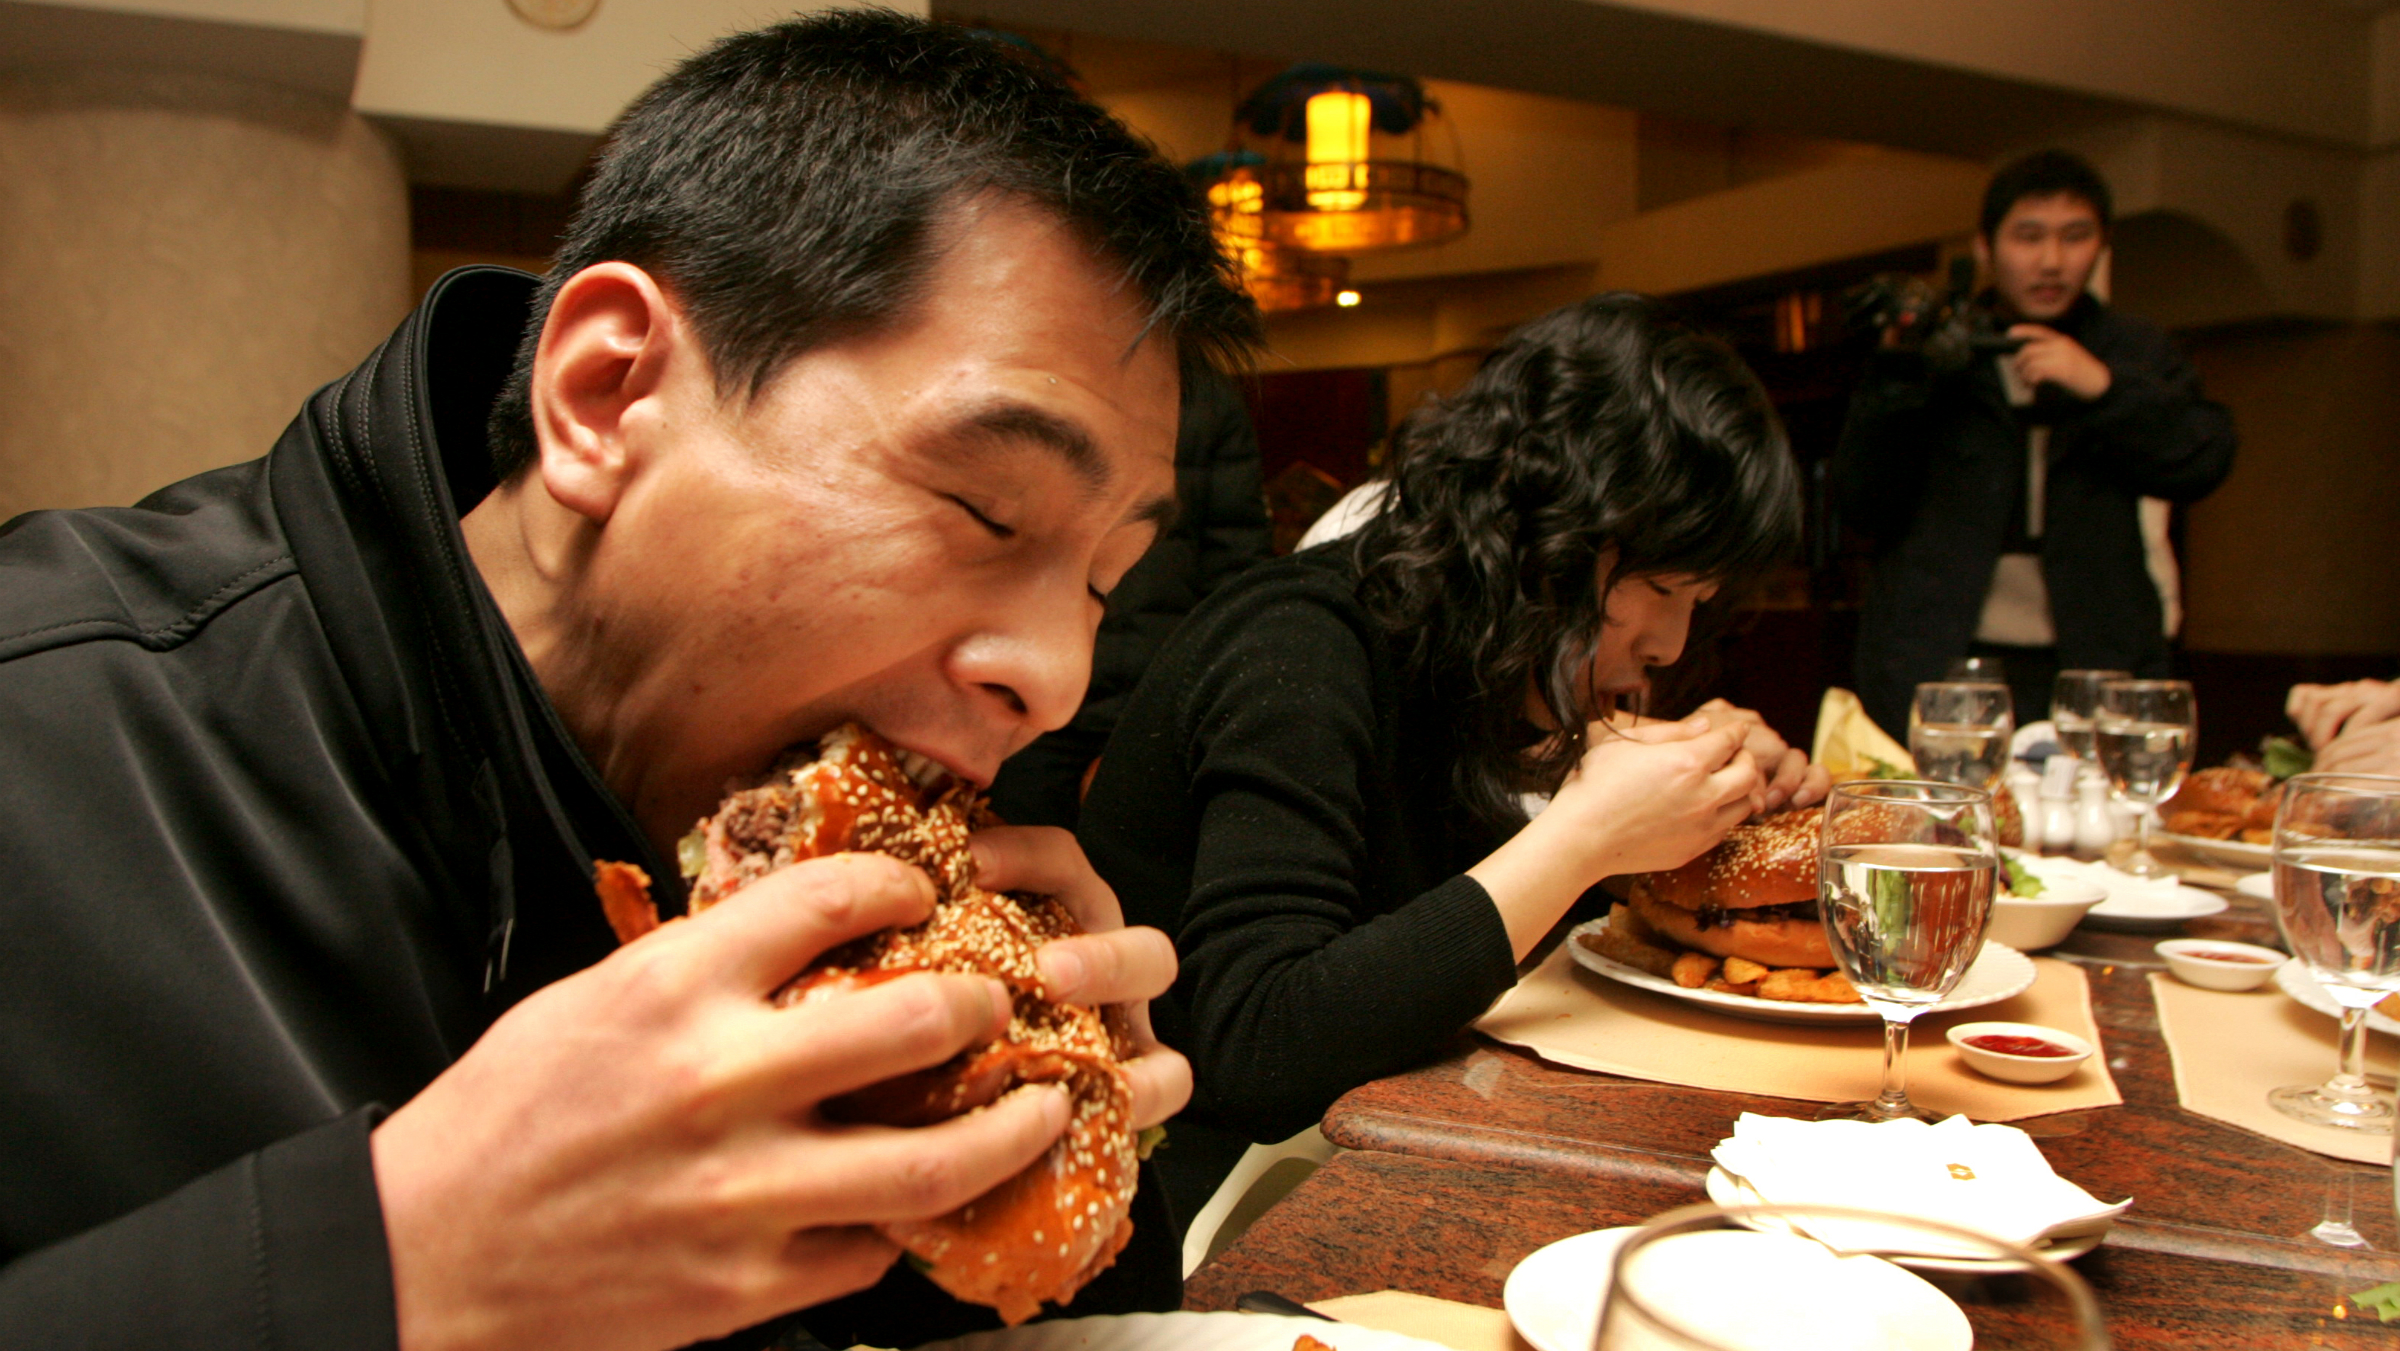 A Chinese man and a woman eat hamburger during a Burger King contest in XiAn, northwest Chinas Shaanxi province, January 22, 2007. Obesity levels in China are rising fast, with more than a quarter of the adult population overweight or obese, as people add more meat and dairy products to their diet, causing serious health problems, a new study says. Chinese people now derive a far larger proportion of energy from fat and animal-based foods, such as meat and eggs, compared with in the past, the study found. The change in diets and lifestyles, where Chinese less frequently have to engage in physical activity at work, is consequently leading to a rise in cancer and coronary heart disease. According to the study, the classical Chinese diet -- rich in vegetables and carbohydrates with minimal animal-sourced food -- no longer exists.(Imaginechina via AP Images